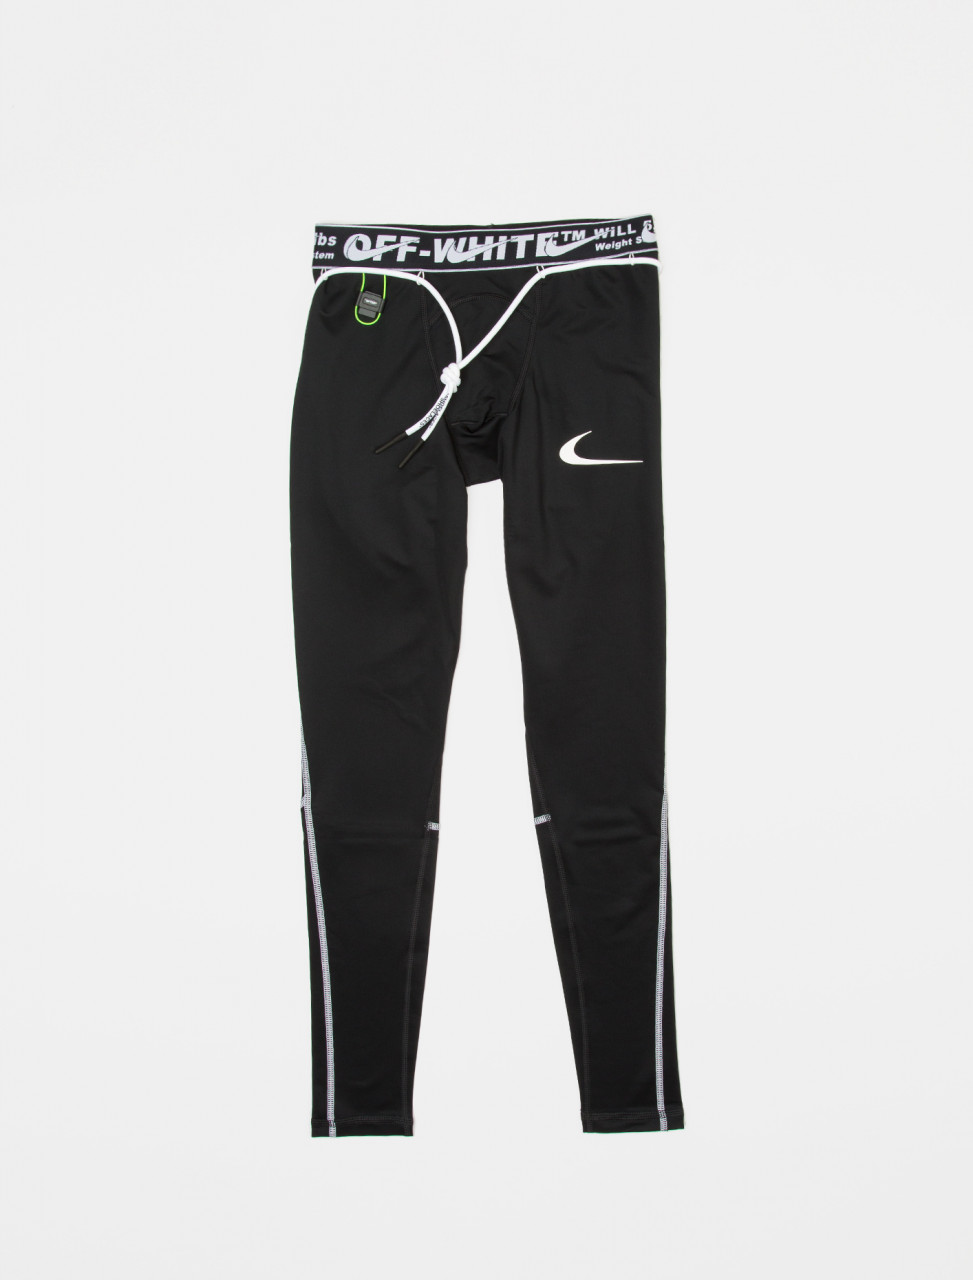 x Off-White Pro Tights in Black